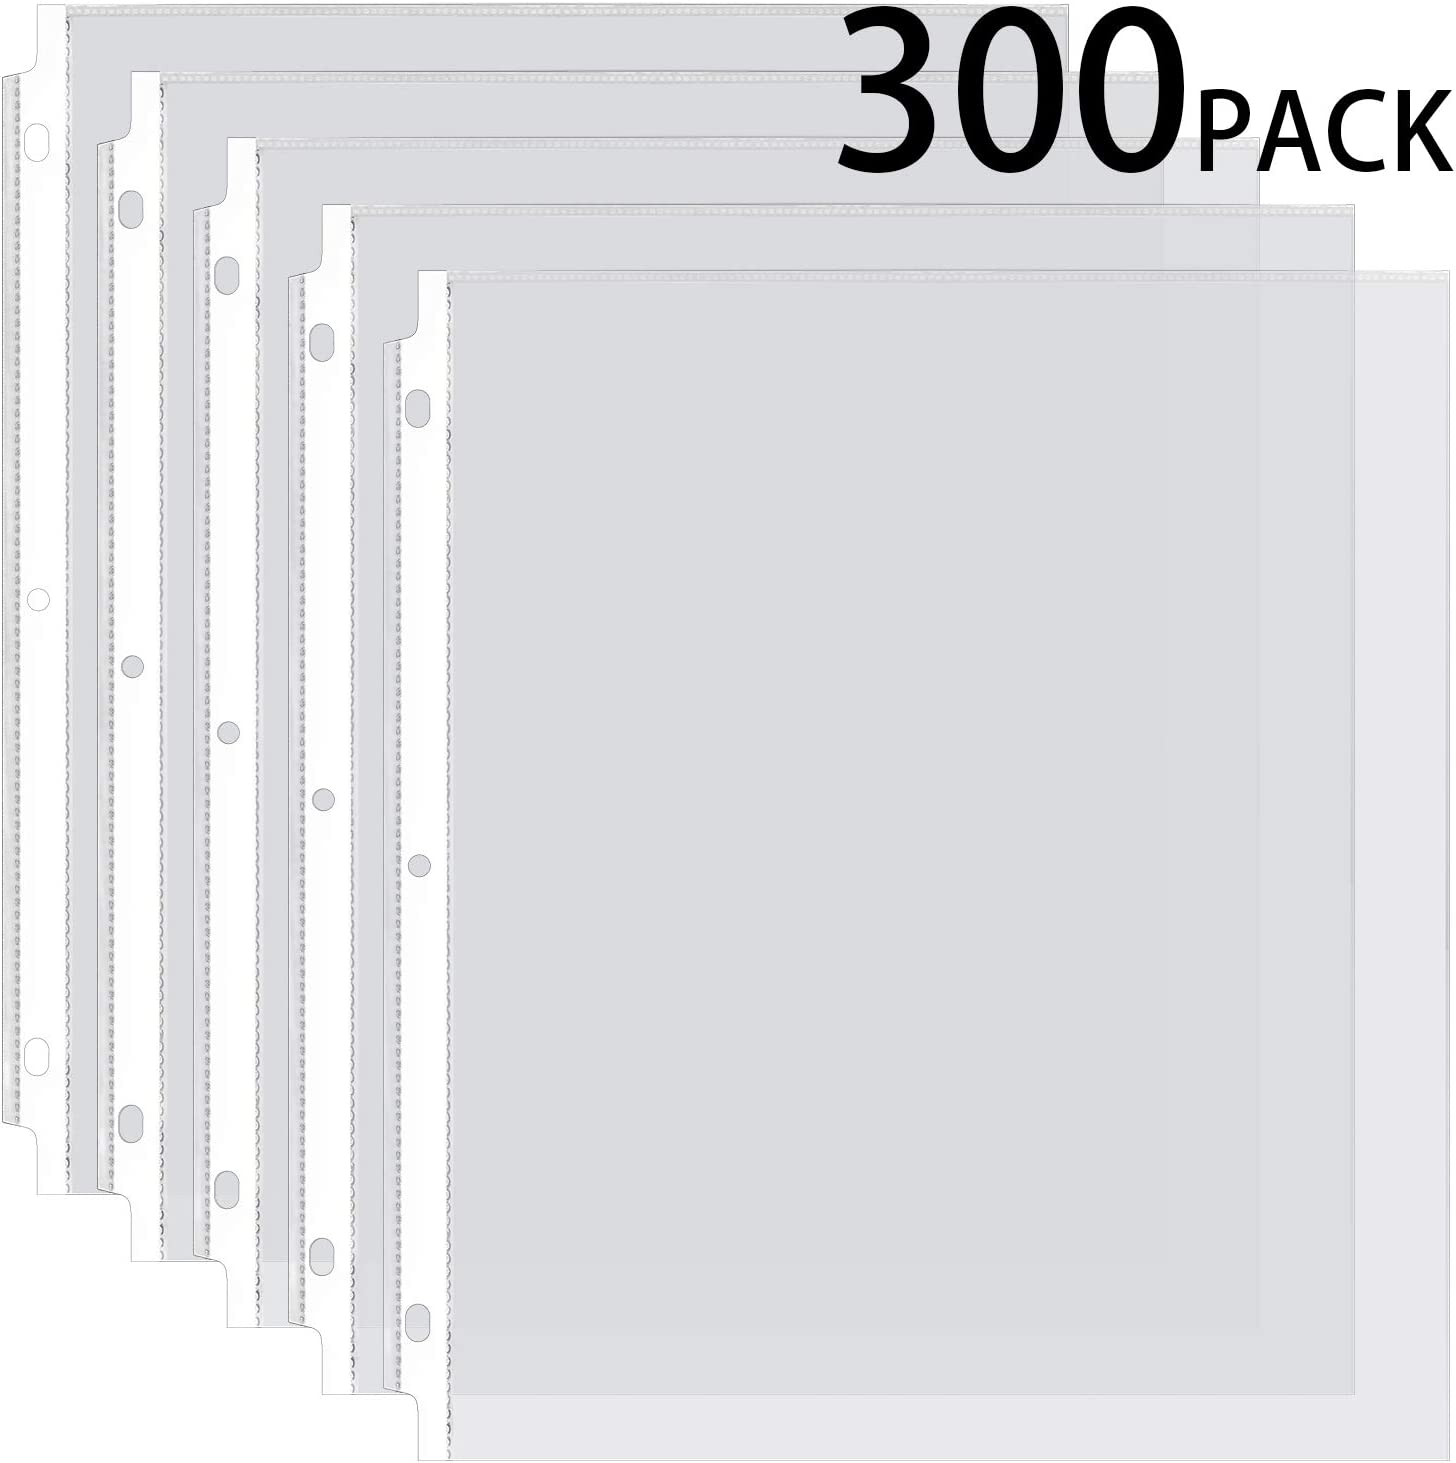 Ktrio Sheet Protectors 8.5 x 11 Inches Clear Page Protectors for 3 Ring Binder, Plastic Sleeves for Binders, Top Loading Paper Protector Acid Free Letter Size, 300 Pack